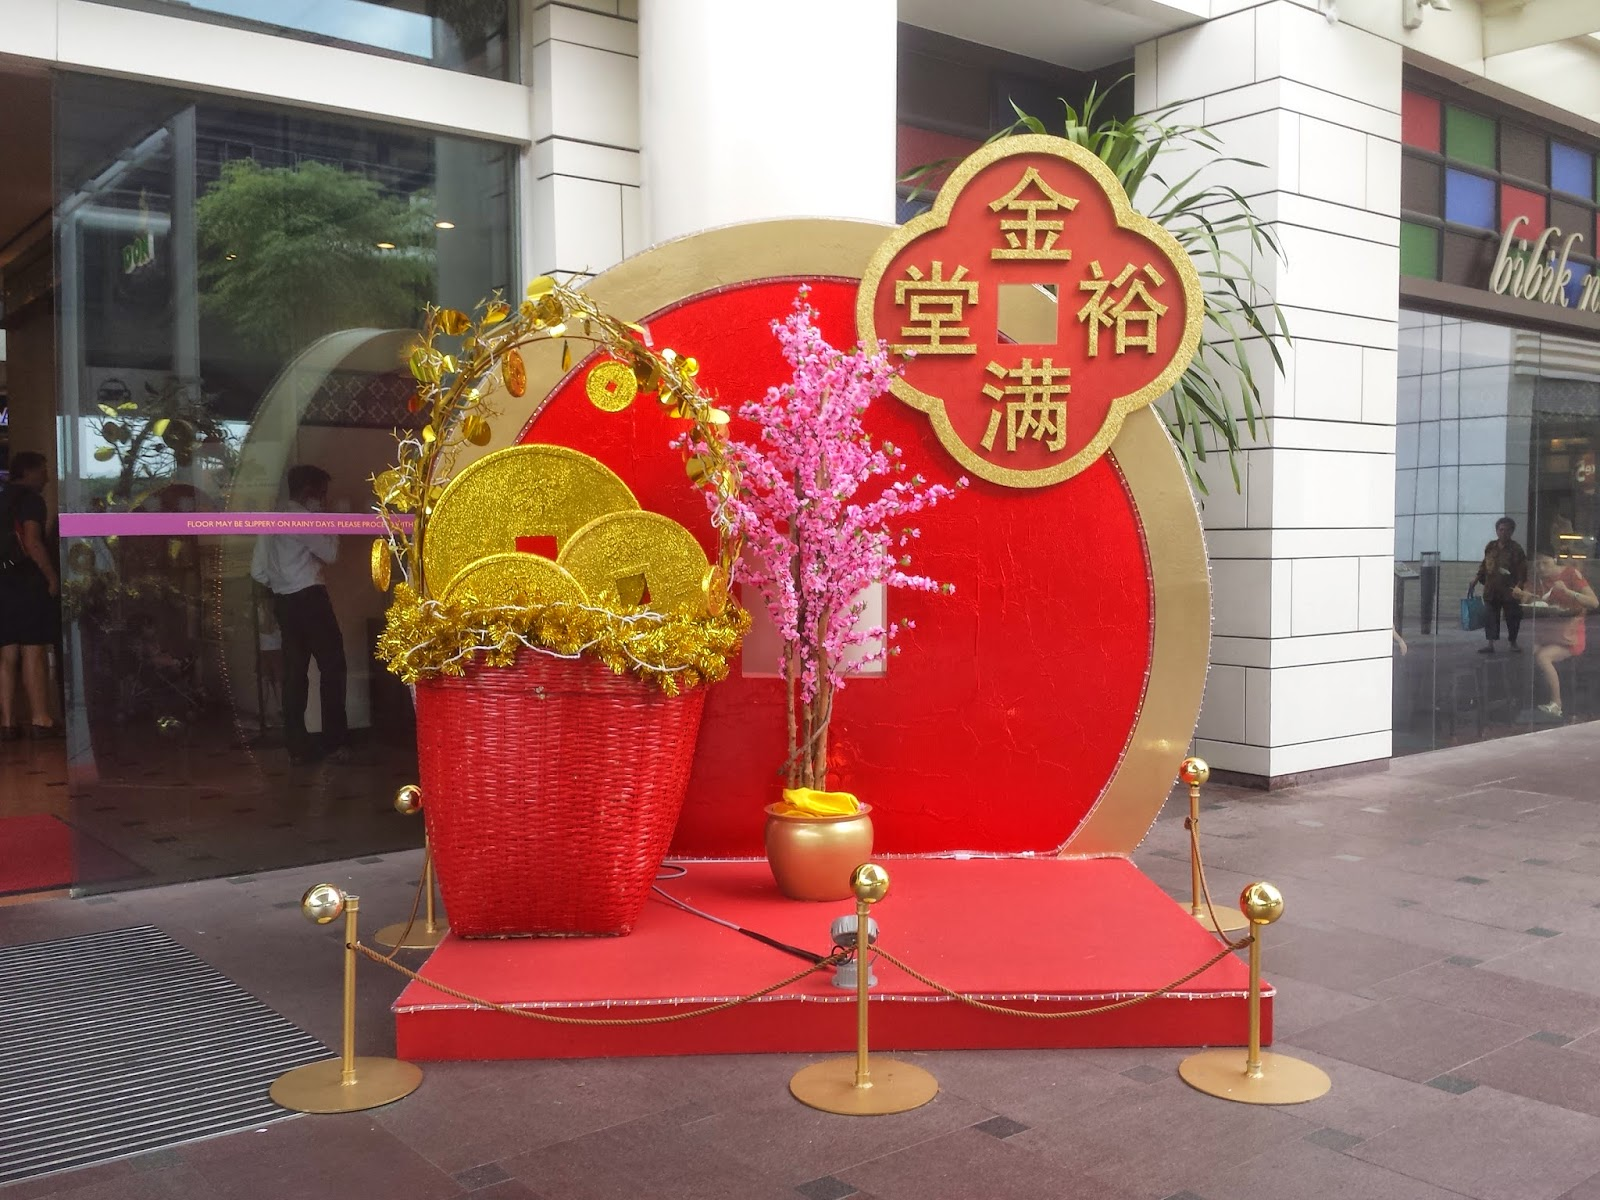 Somewhere in Singapore Blog: Chinese New Year decorations ...